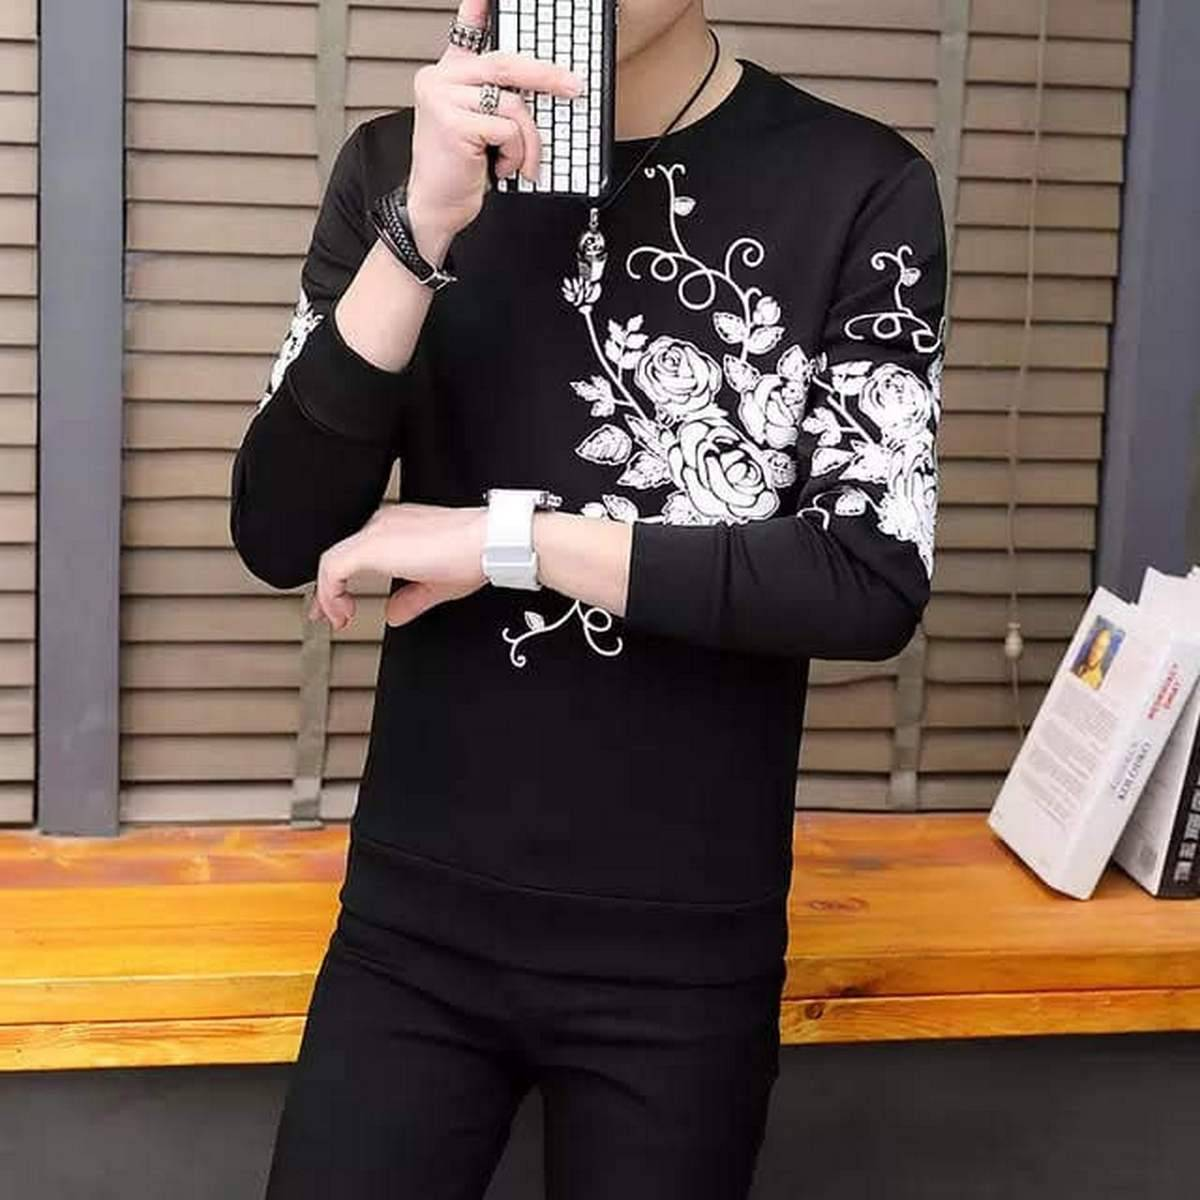 Jumper T-Shirts Flower Print Full Sleeves, For Summer Party wear ,2021 best Collection full stitched shirt, easy wash ready to wear).